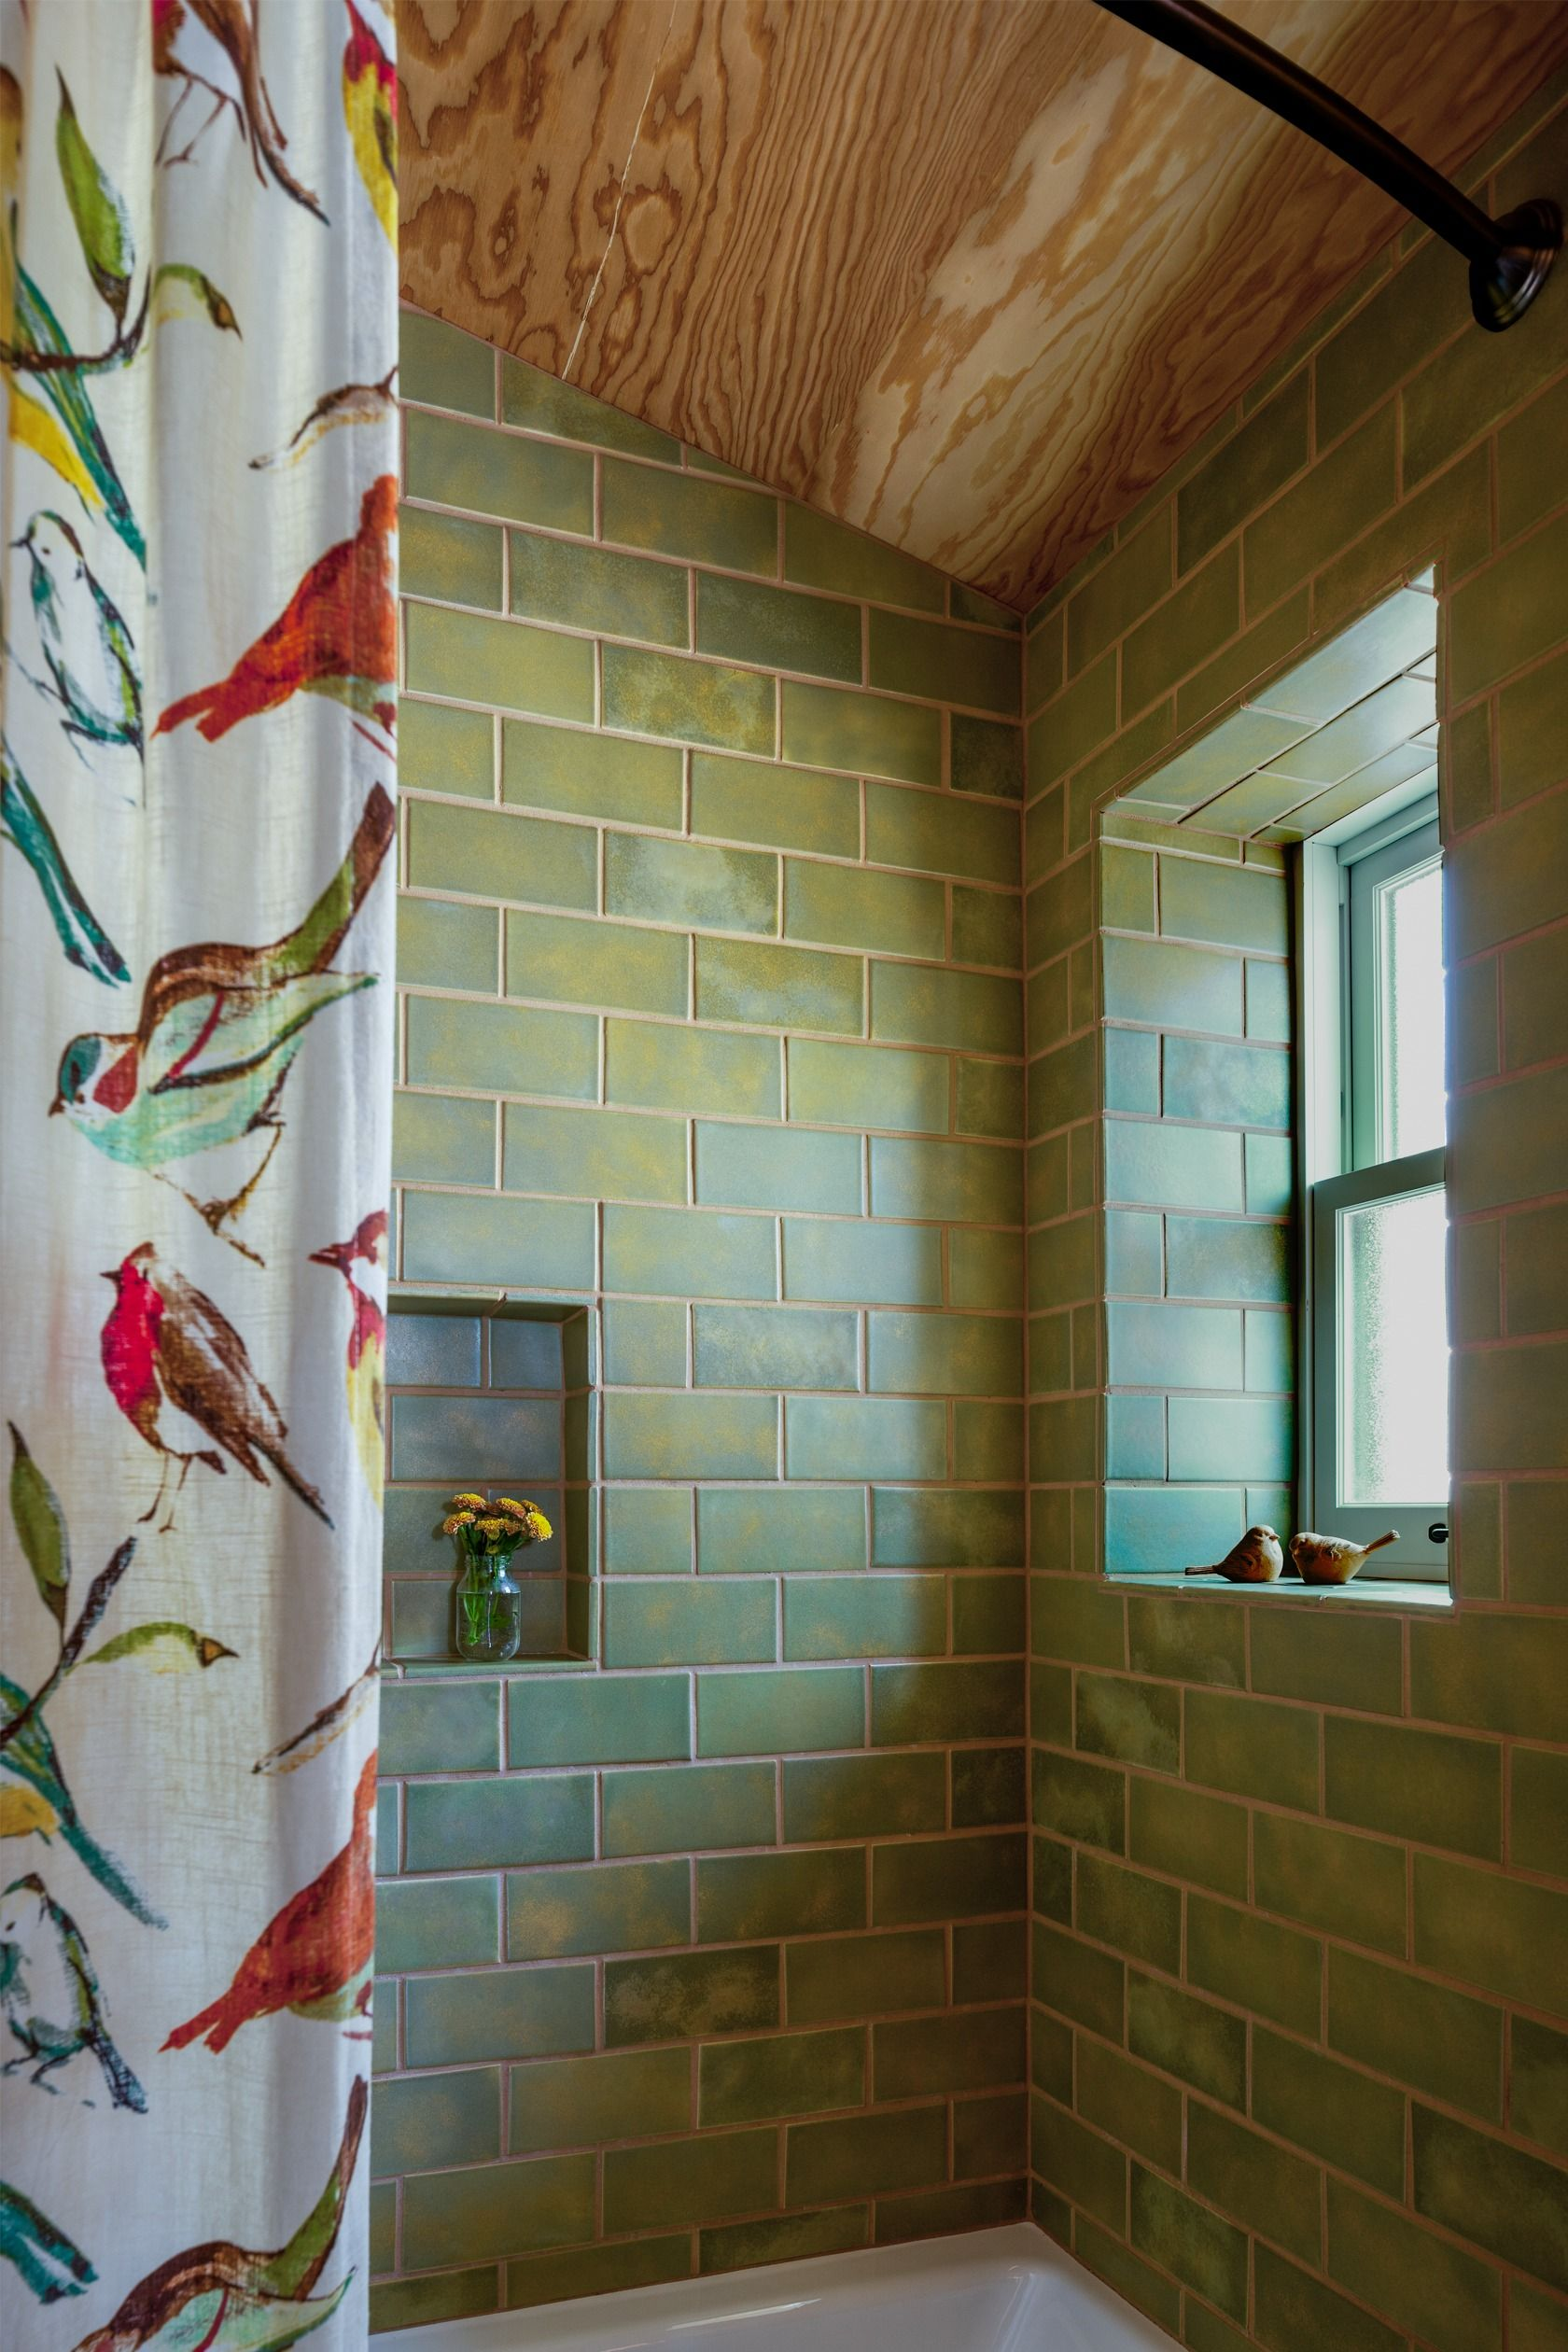 Green Tile In The Shower Extends Up To The Exposed Plywood Ceiling Cabin Bathroom Greentiledbathroom Greentile Green Tile Plywood Ceiling Exposed Ceilings